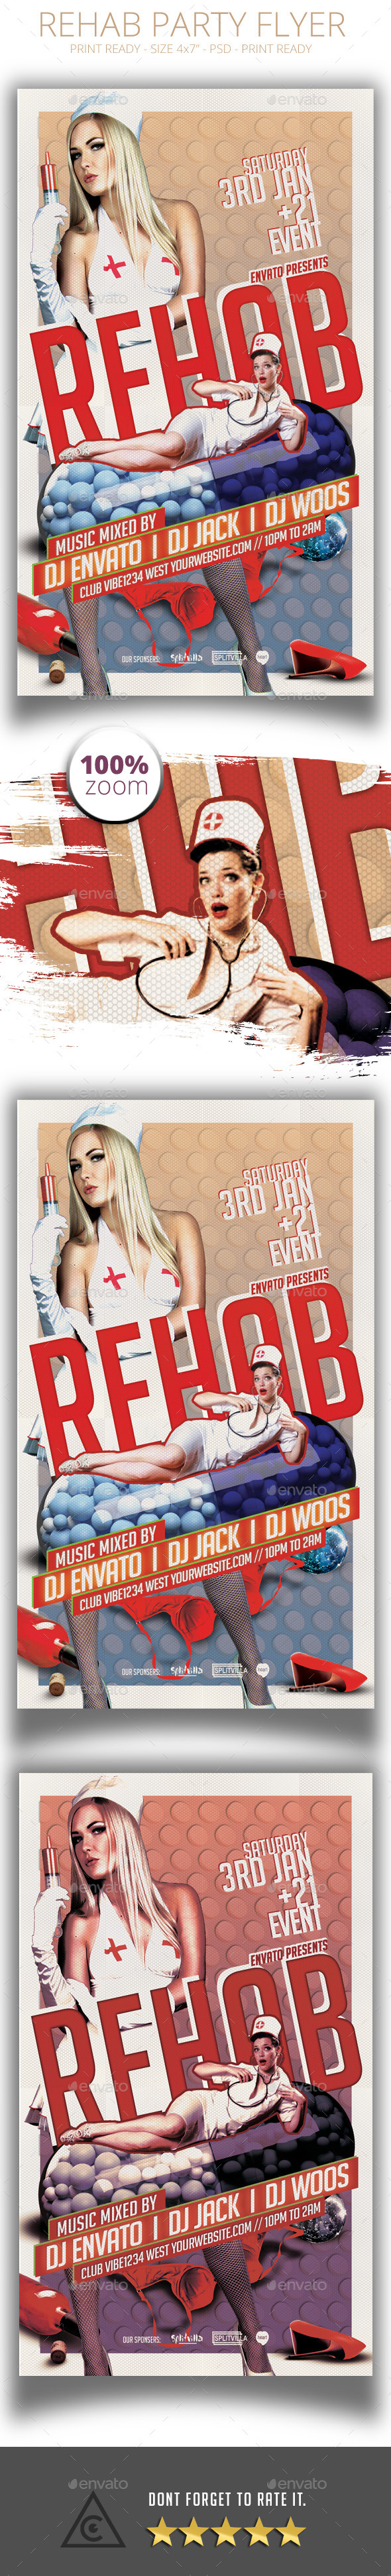 Retro Style Rehab Party Flyer - Clubs & Parties Events